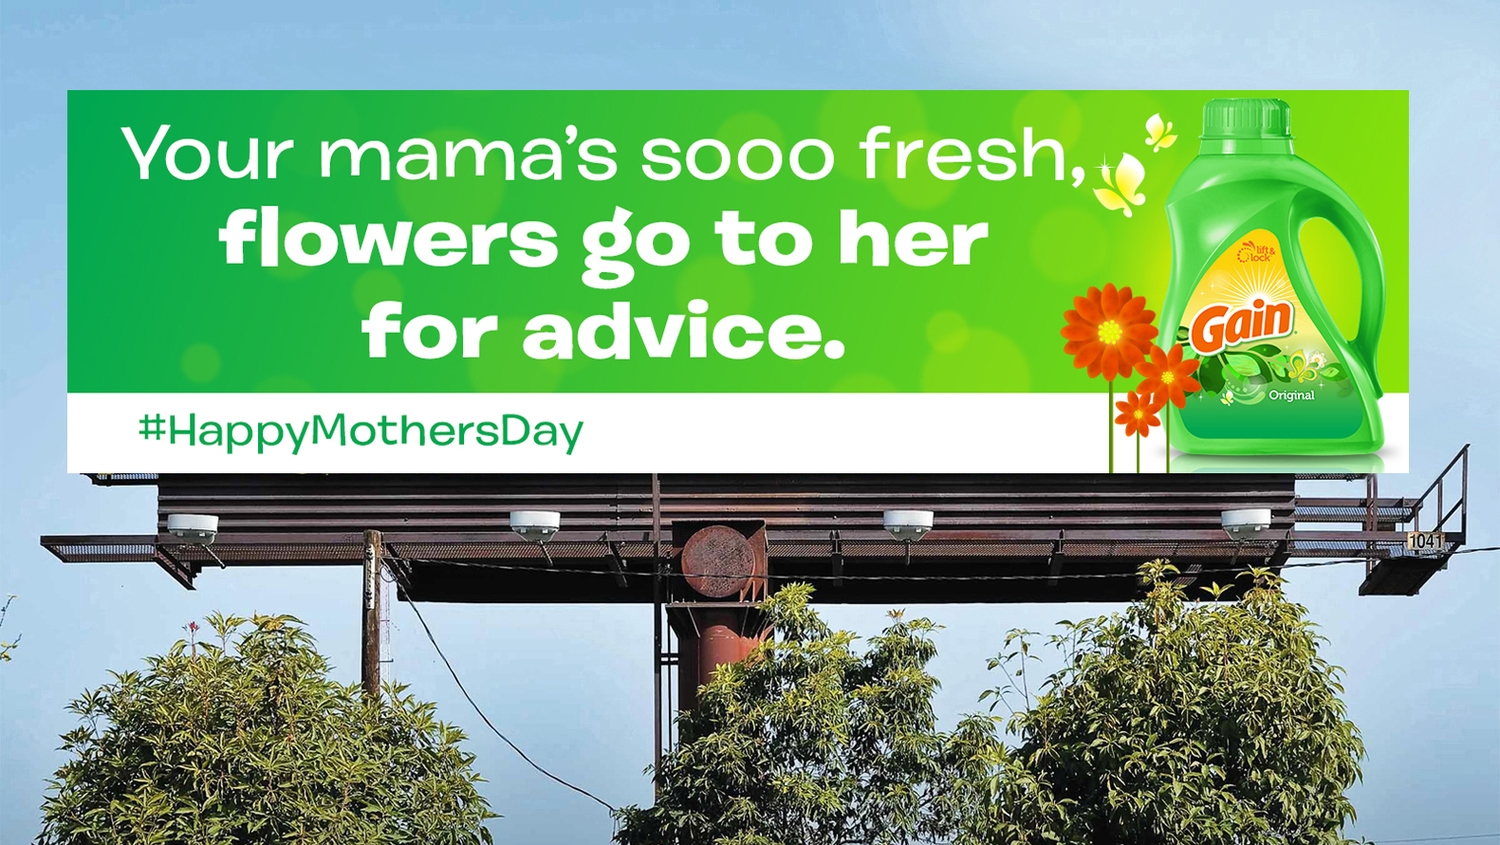 Gain Mother's Day OOH